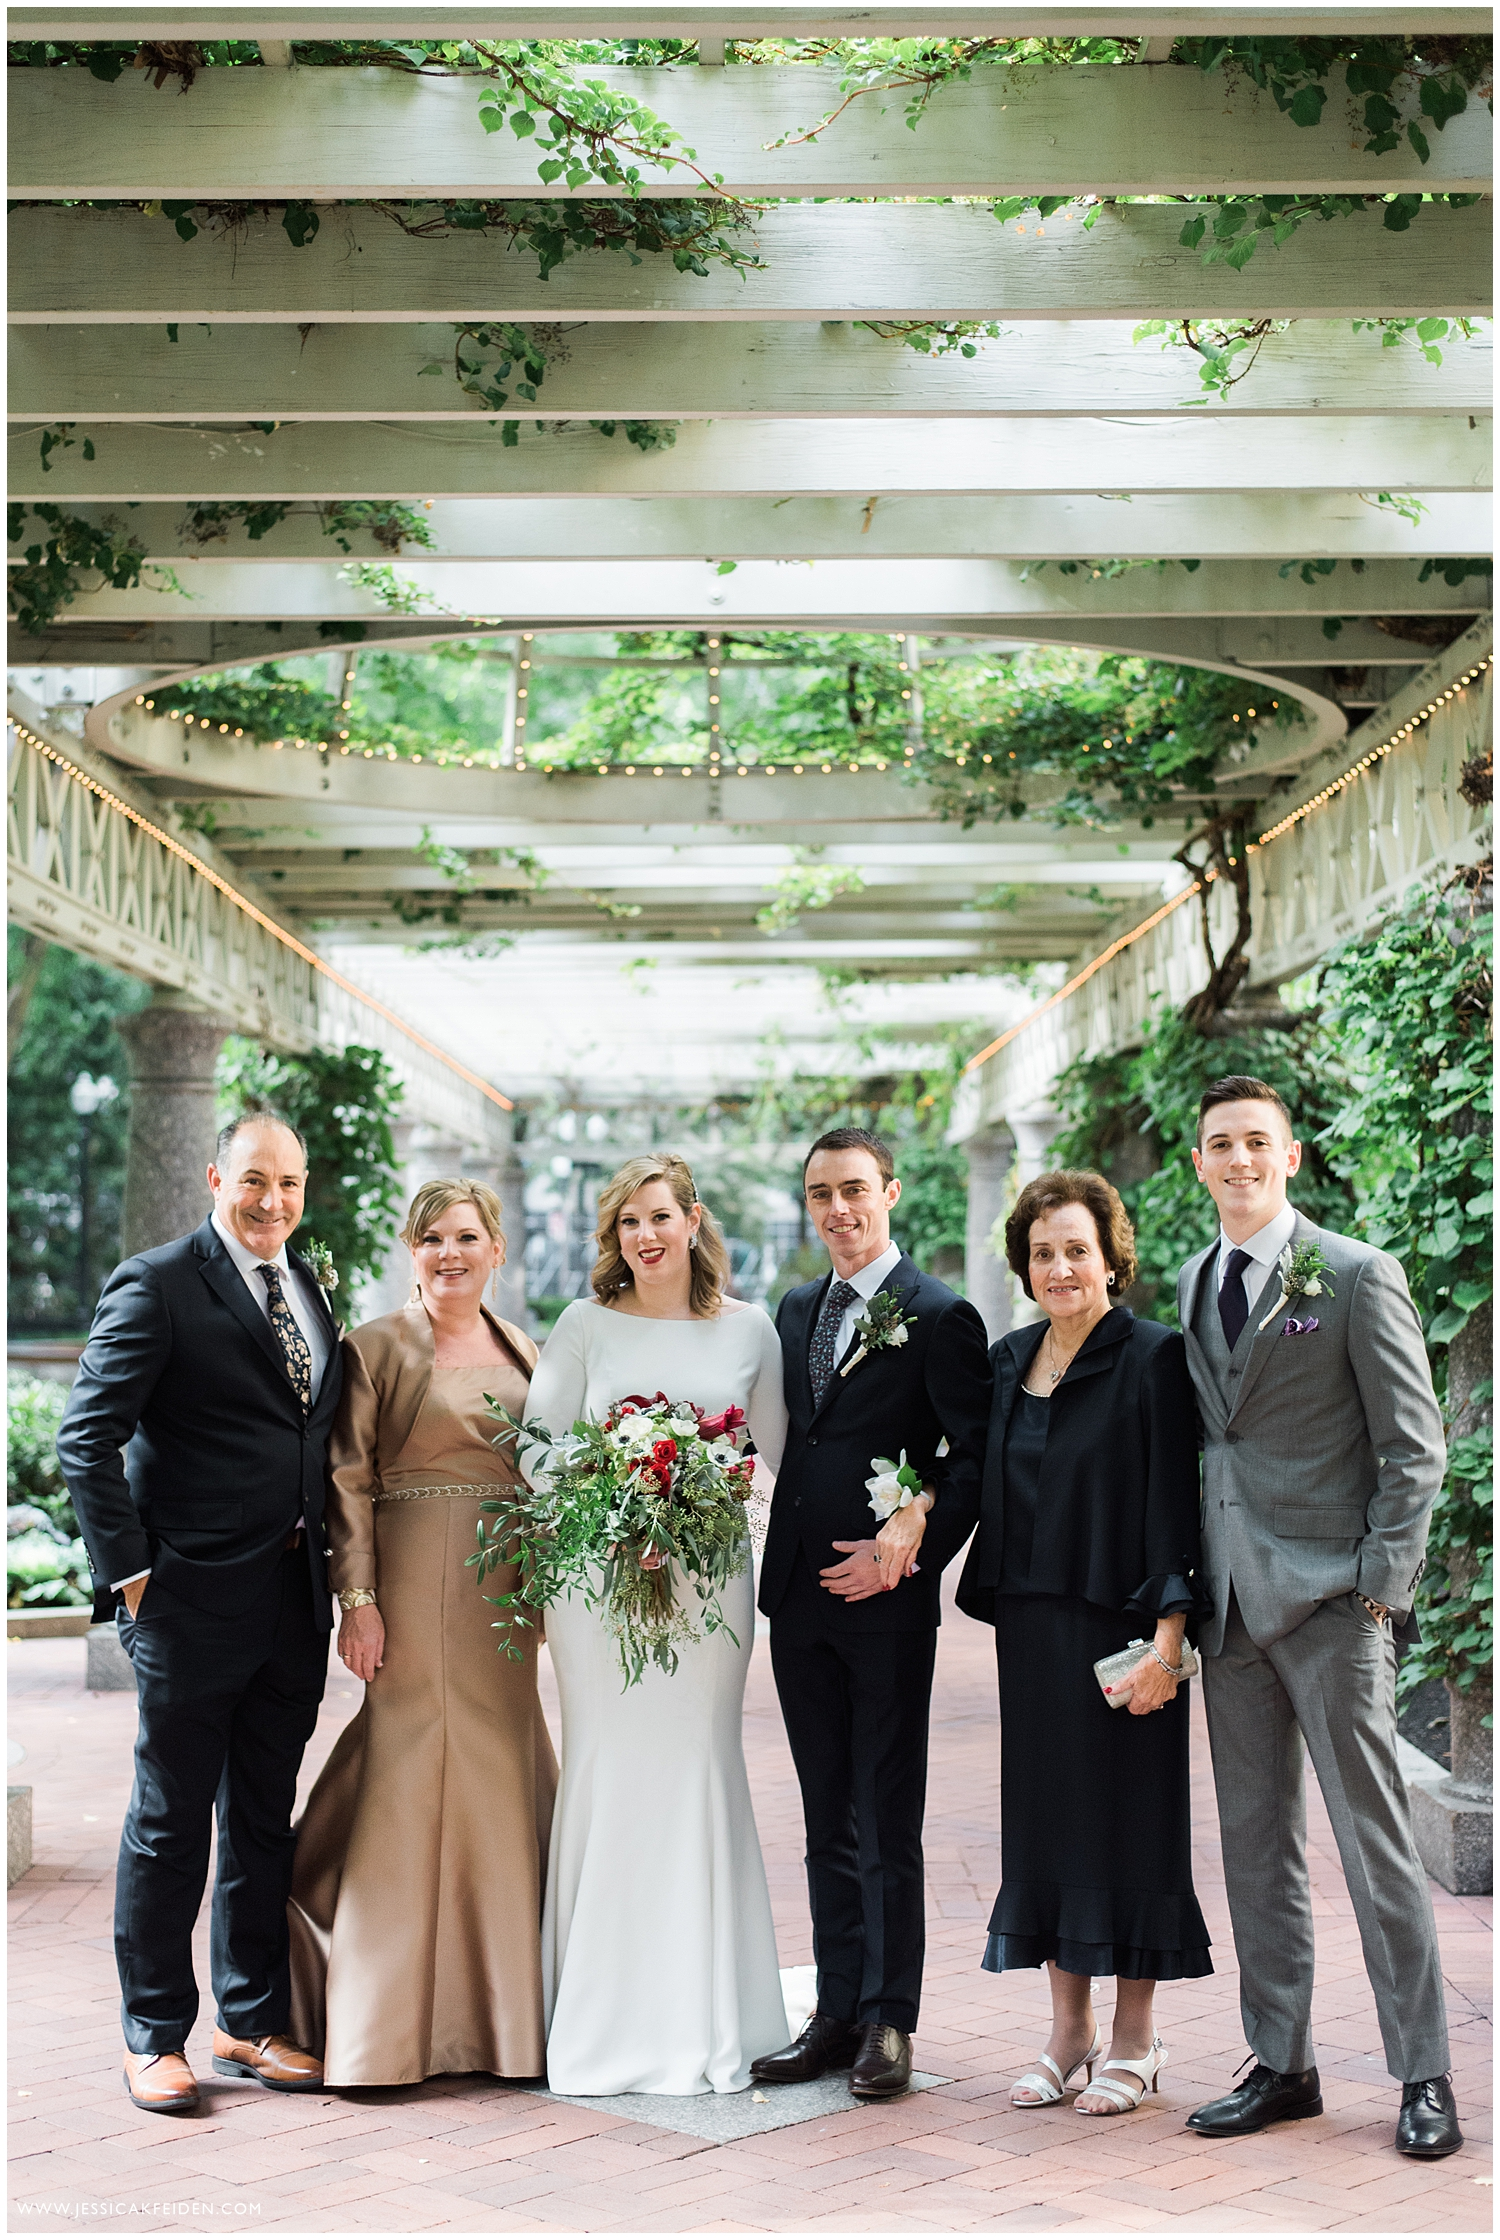 Jessica K Feiden Photography_The State Room Boston Wedding Photographer_0032.jpg